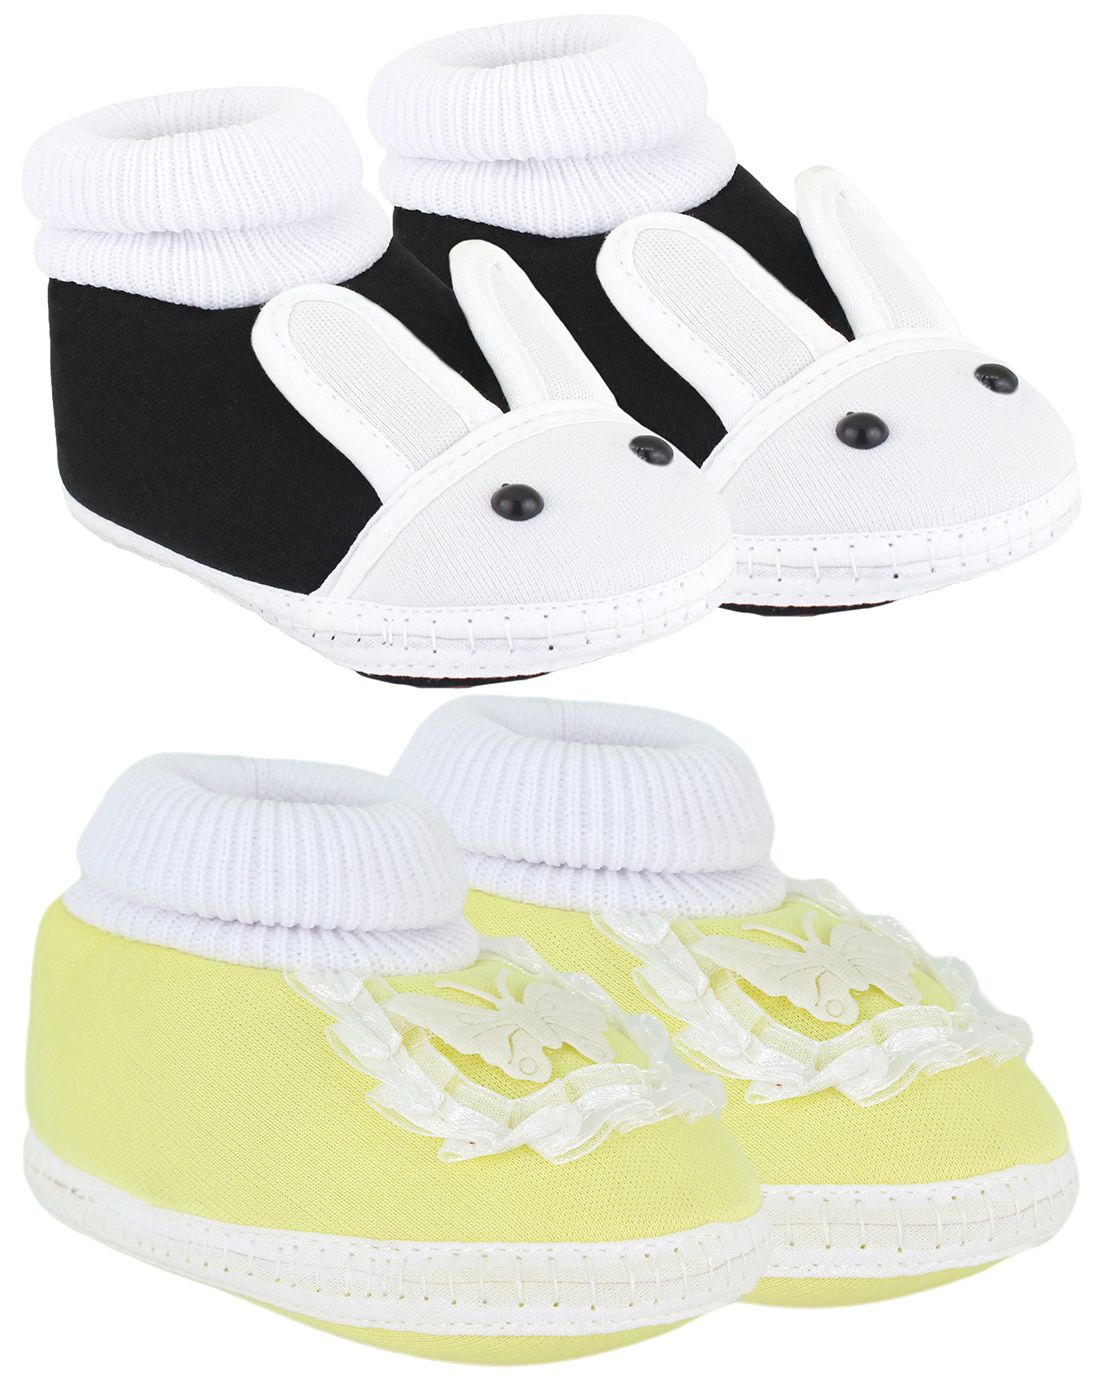 Neska Moda Pack Of 2 Baby Boys & Girls Black And Yellow Cotton Booties For 0 To 12 Months